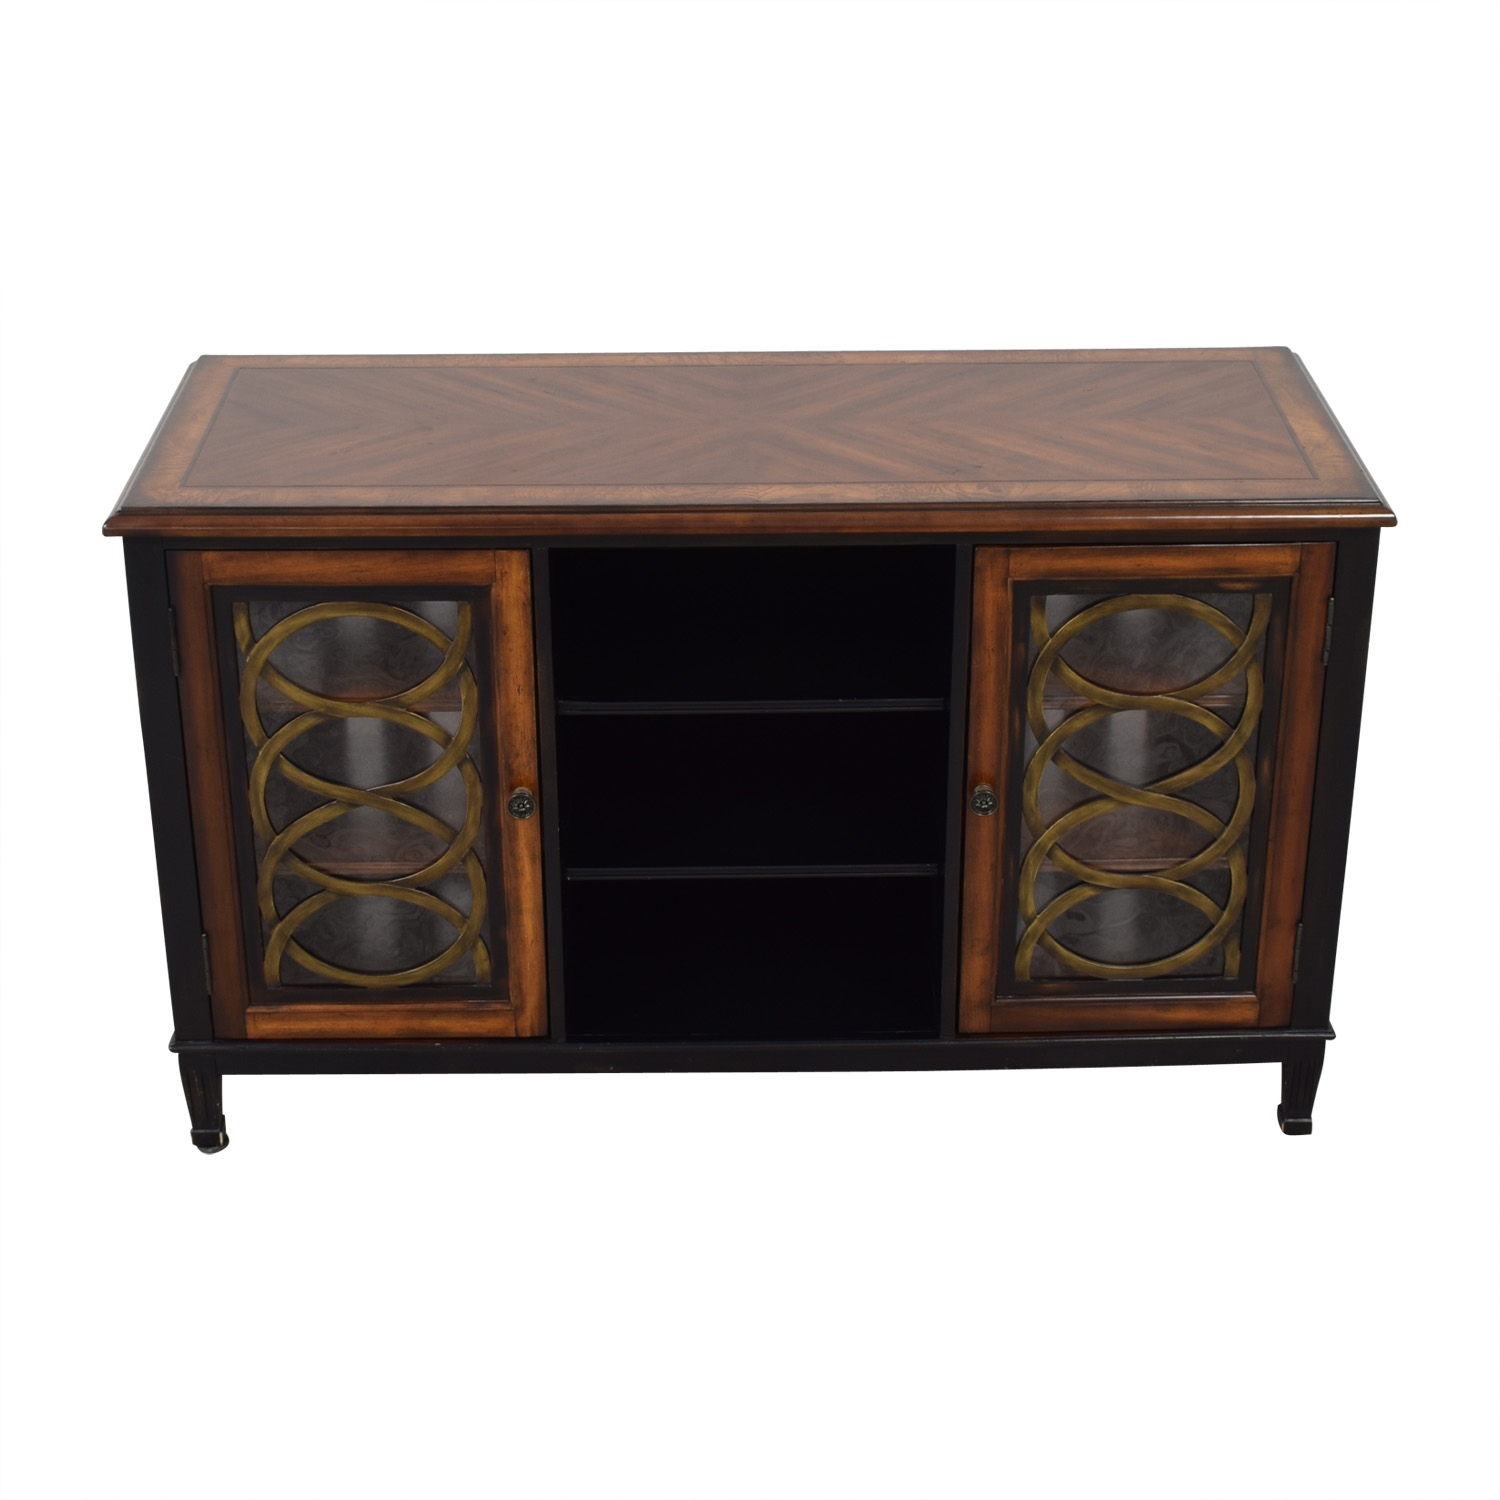 Hooker Furniture Hooker Furniture Entertainment Console dimensions